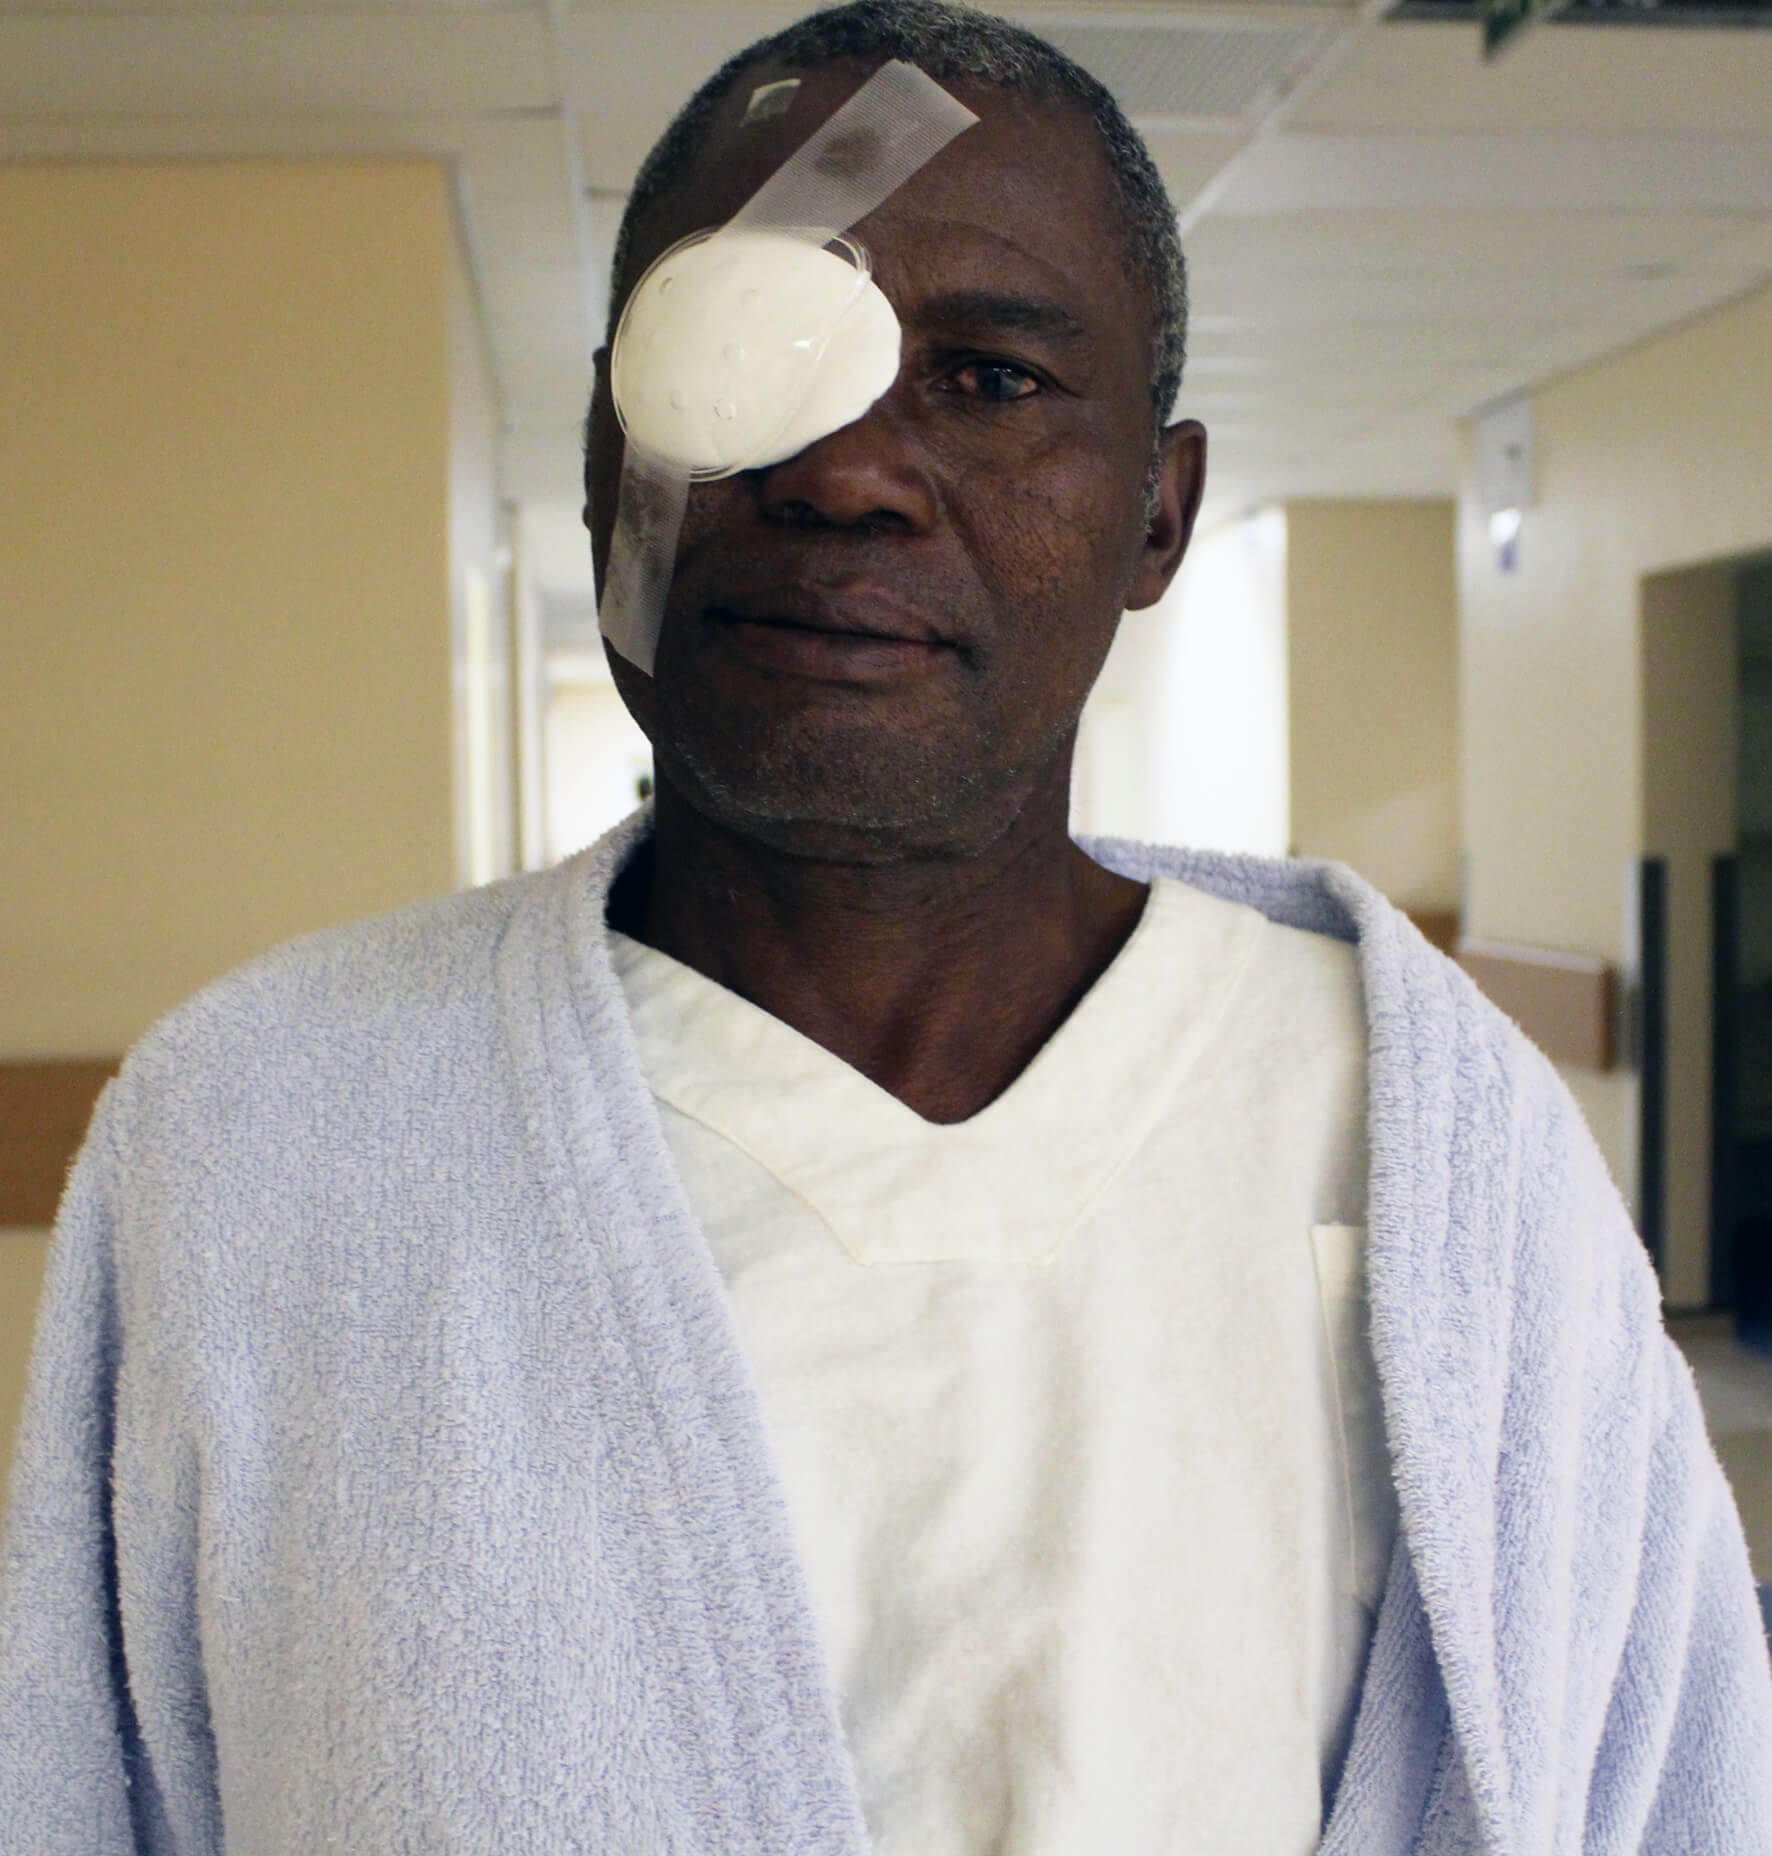 Cataract Operation restores sight